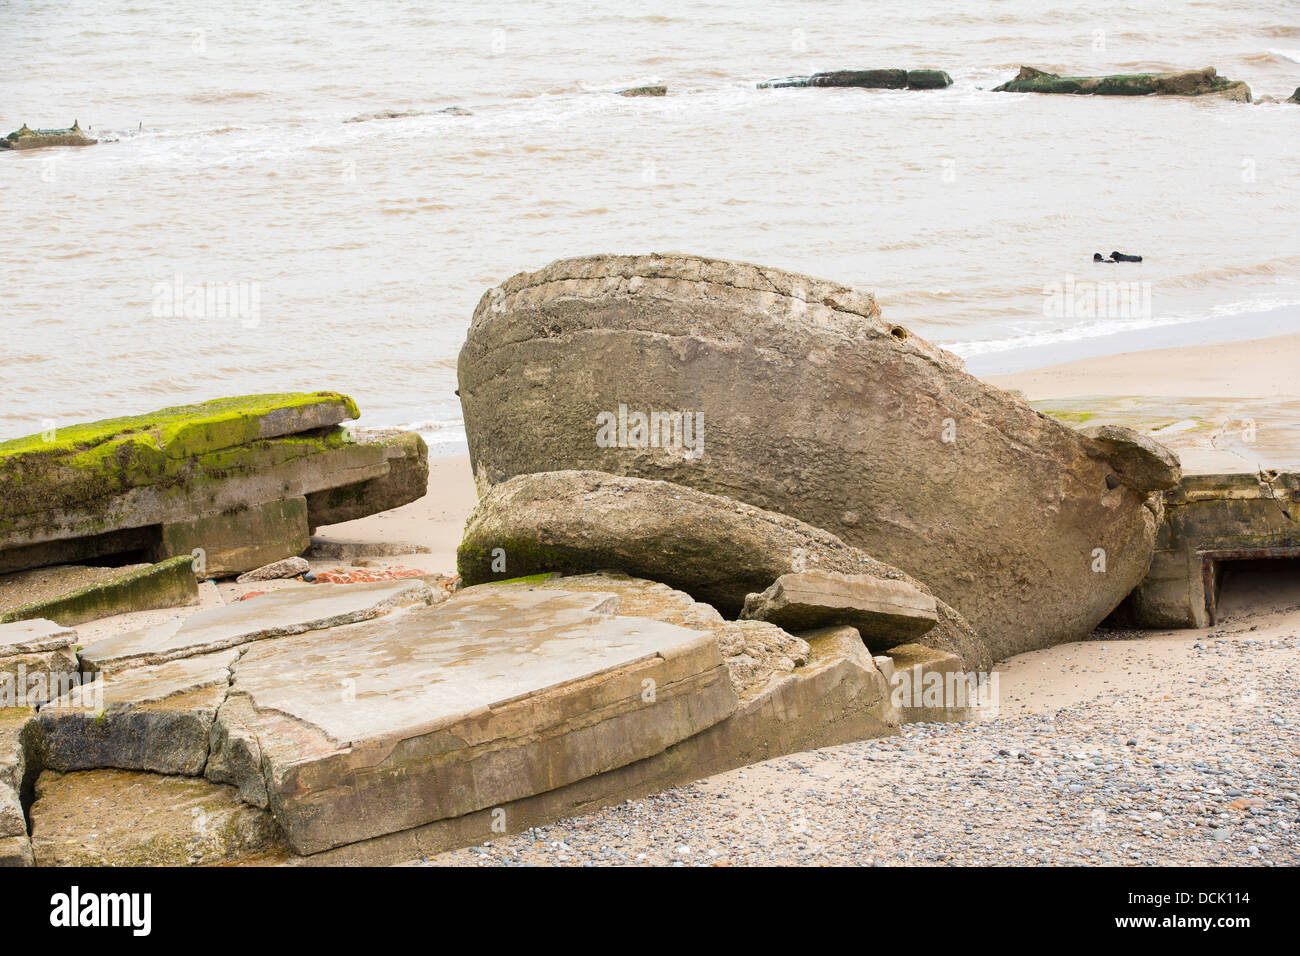 The Remains of a gun emplacement at the Godwin battery on the beach at Kilnsea at the head of Spurn point - Stock Image